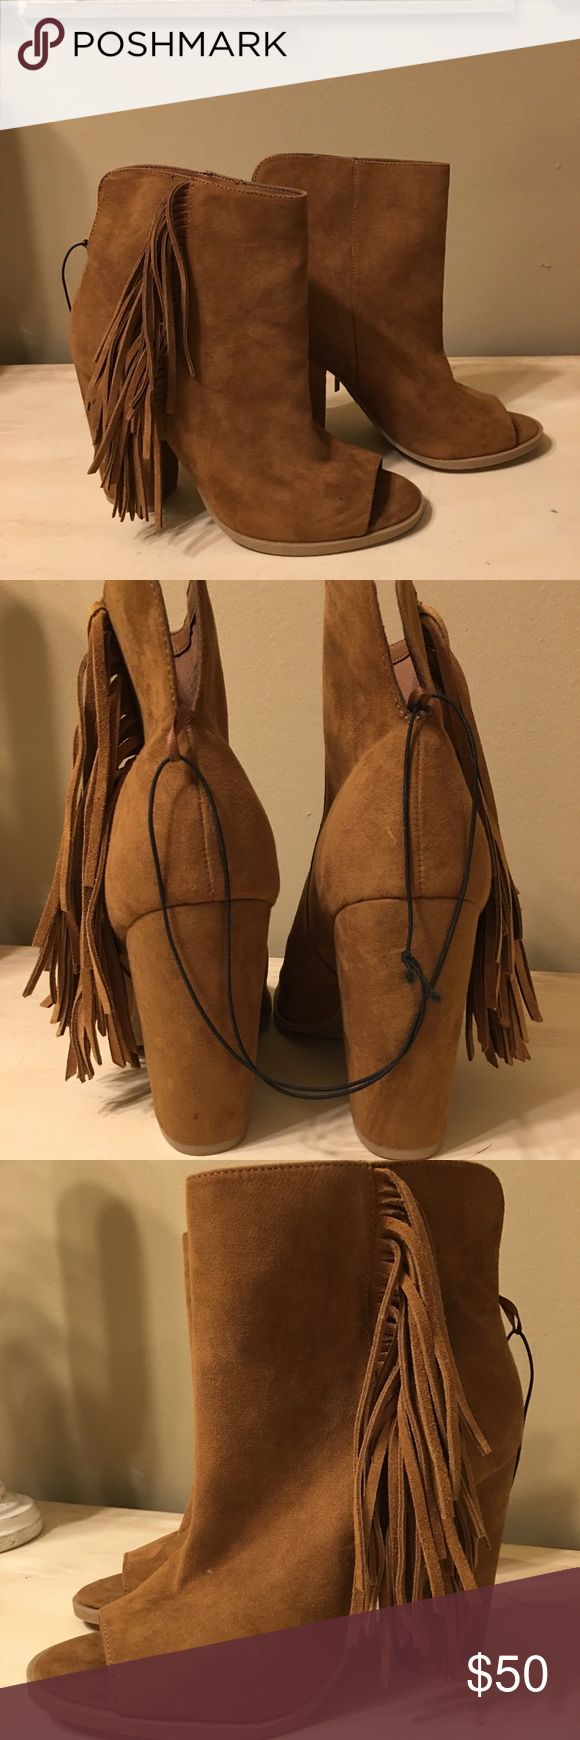 """DV Booties Never worn in EUC brown leather peep toe bootie with a 4"""" stacked heel and fringe on the outside. DV by Dolce Vita Shoes Ankle Boots & Booties"""